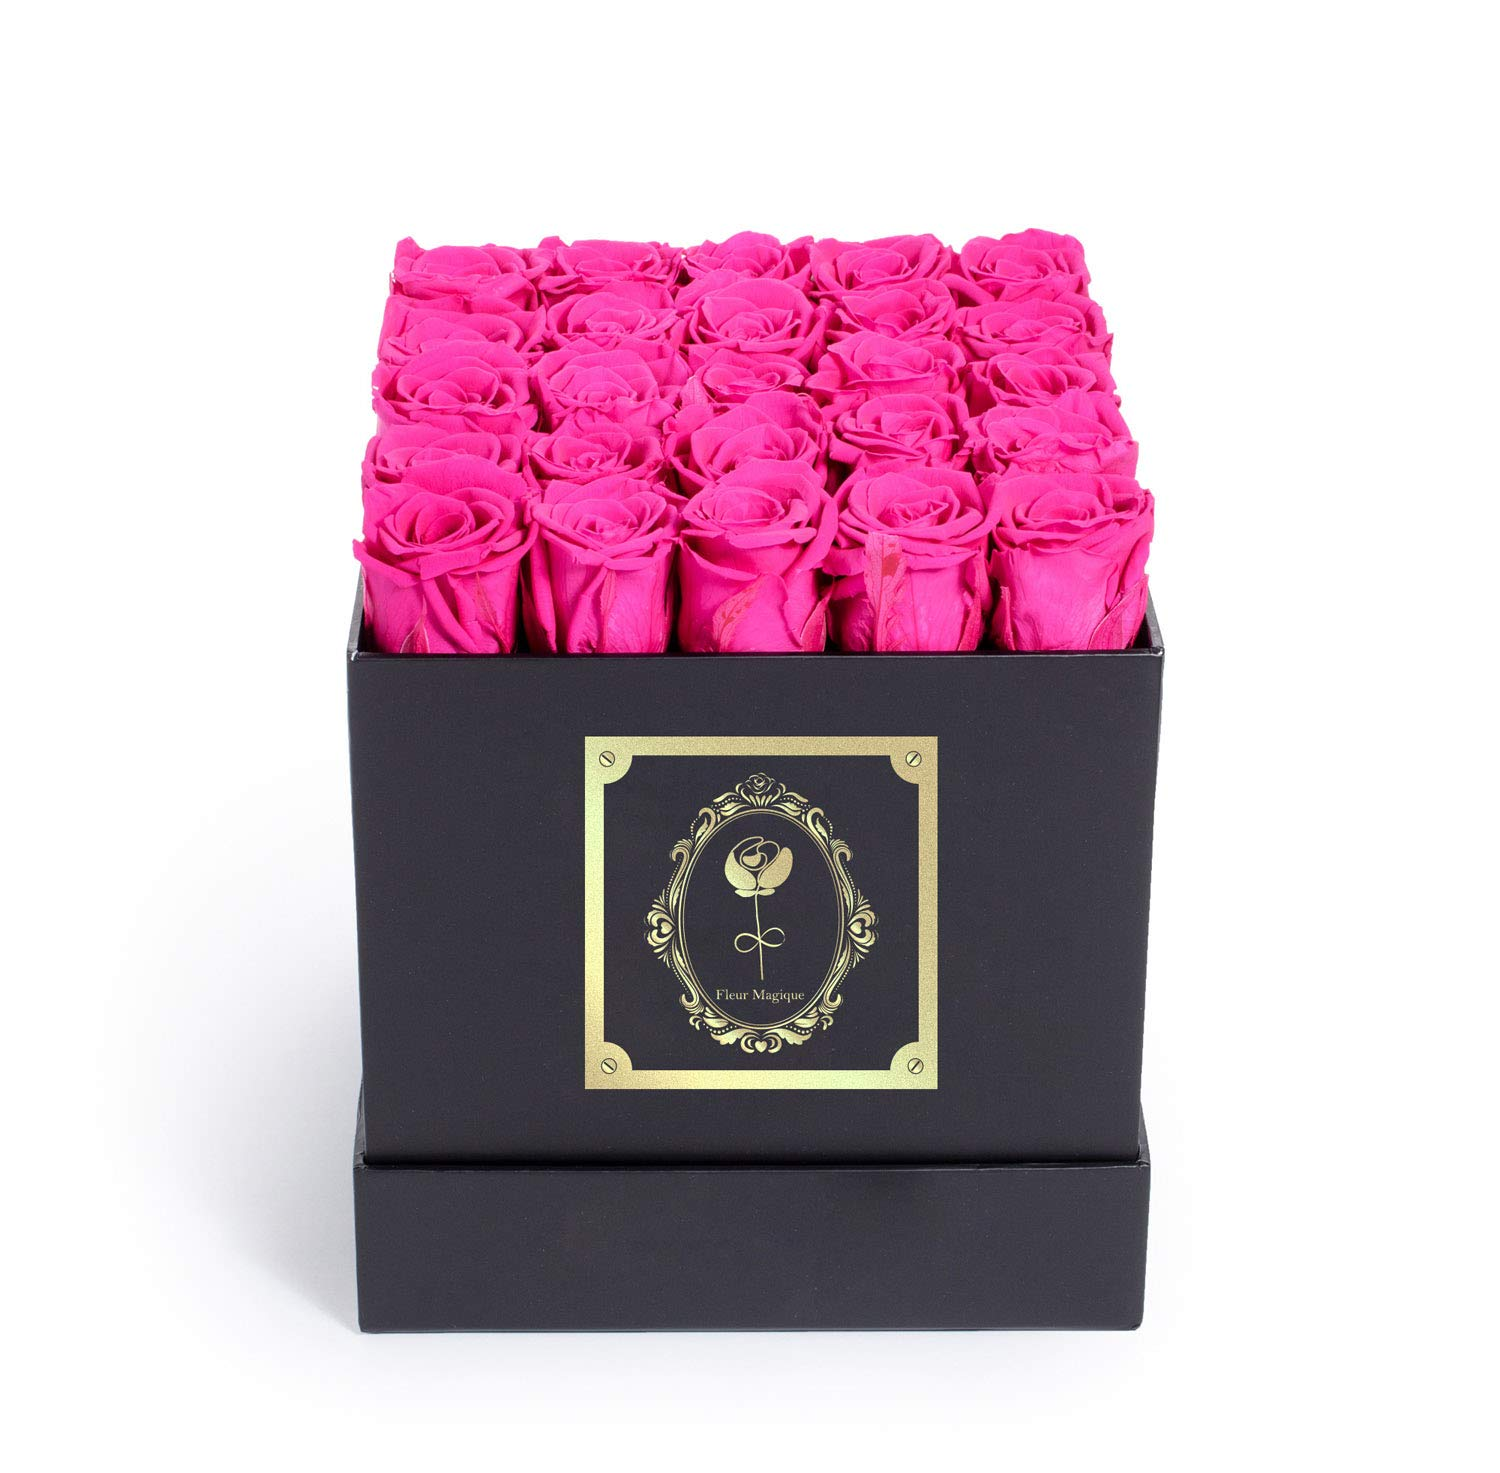 Fleur Magique | Preserved Roses for Delivery - Large Square Classic Black Box - Hot Pink Roses